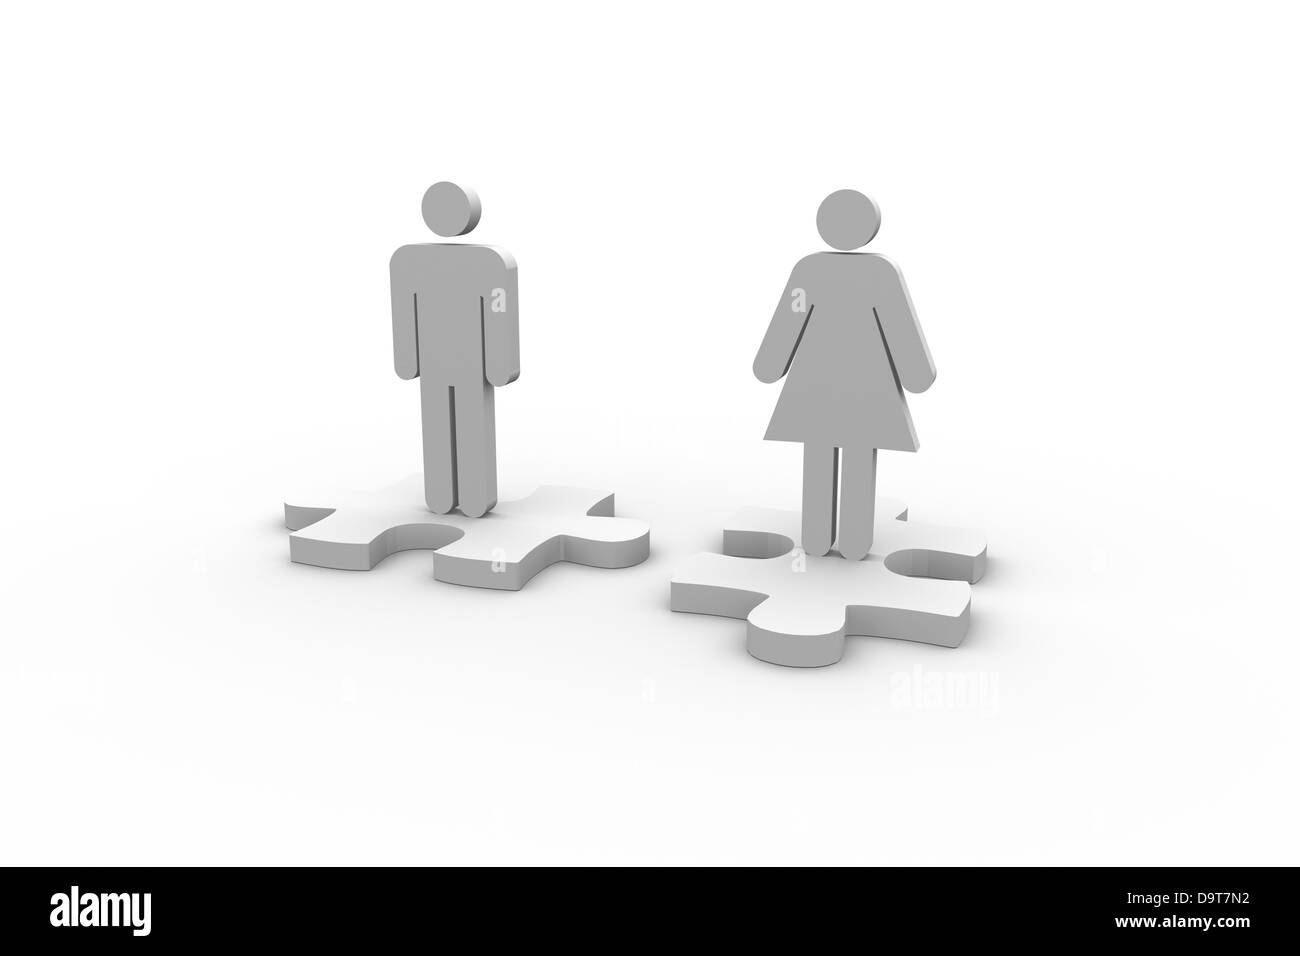 Human figures over jigsaw pieces separated - Stock Image